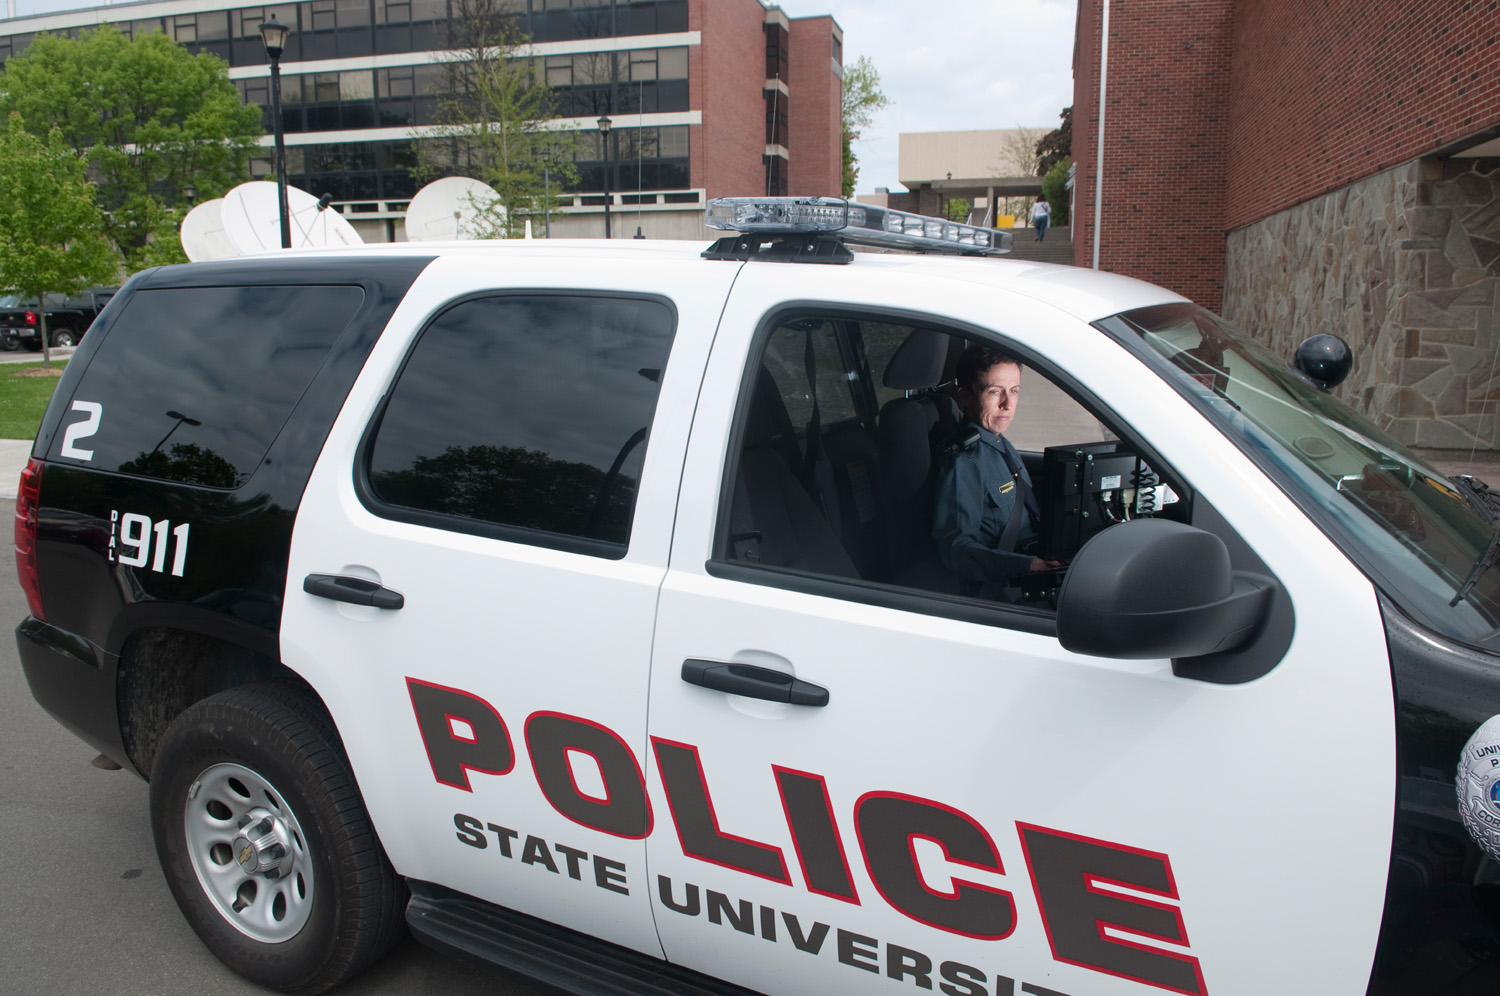 University Police Vehicle